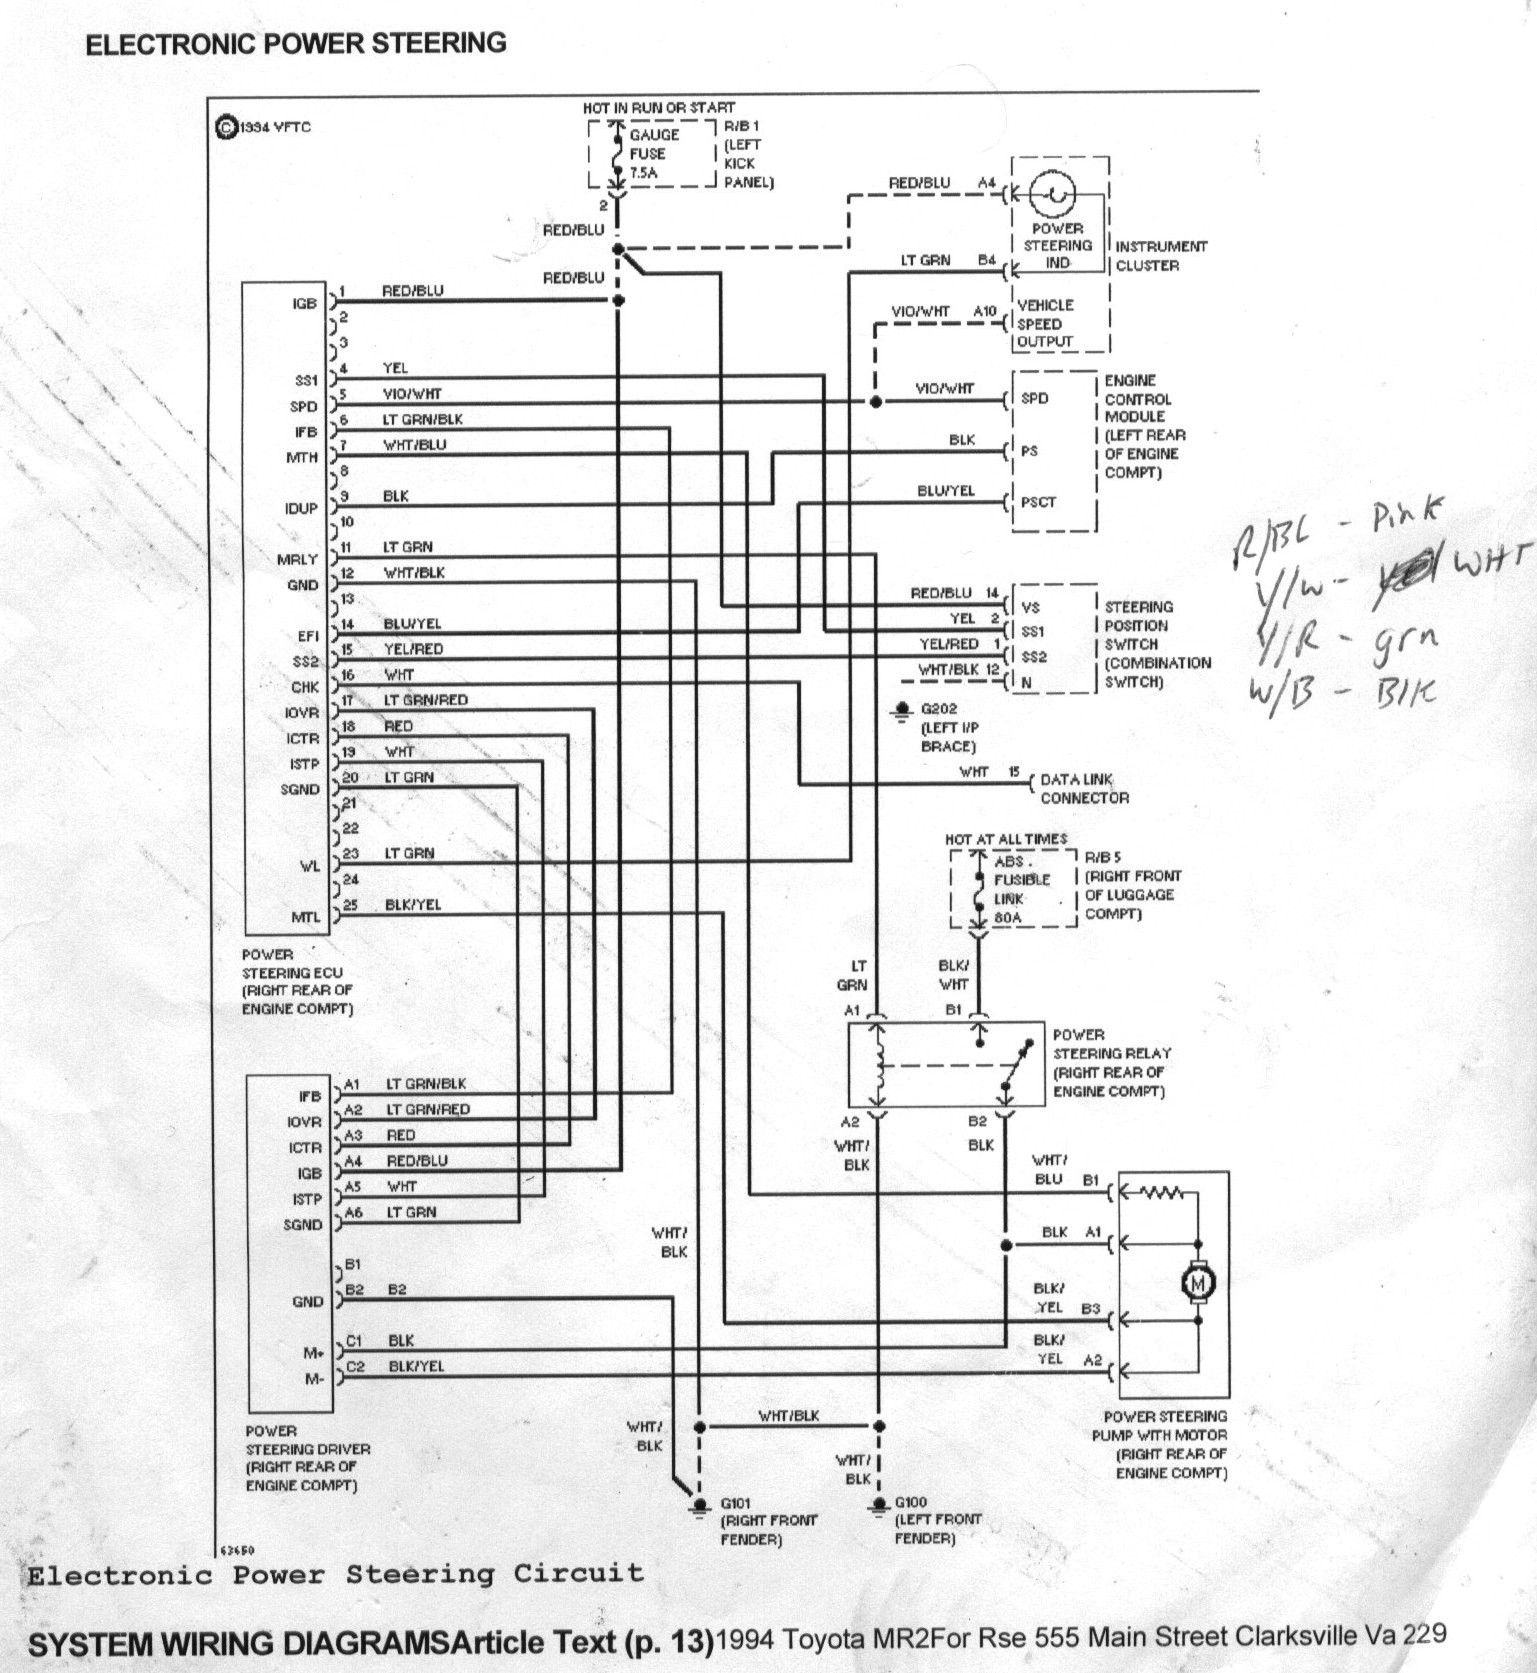 Wiring Diagrams On Toyota Cressida Electrical System